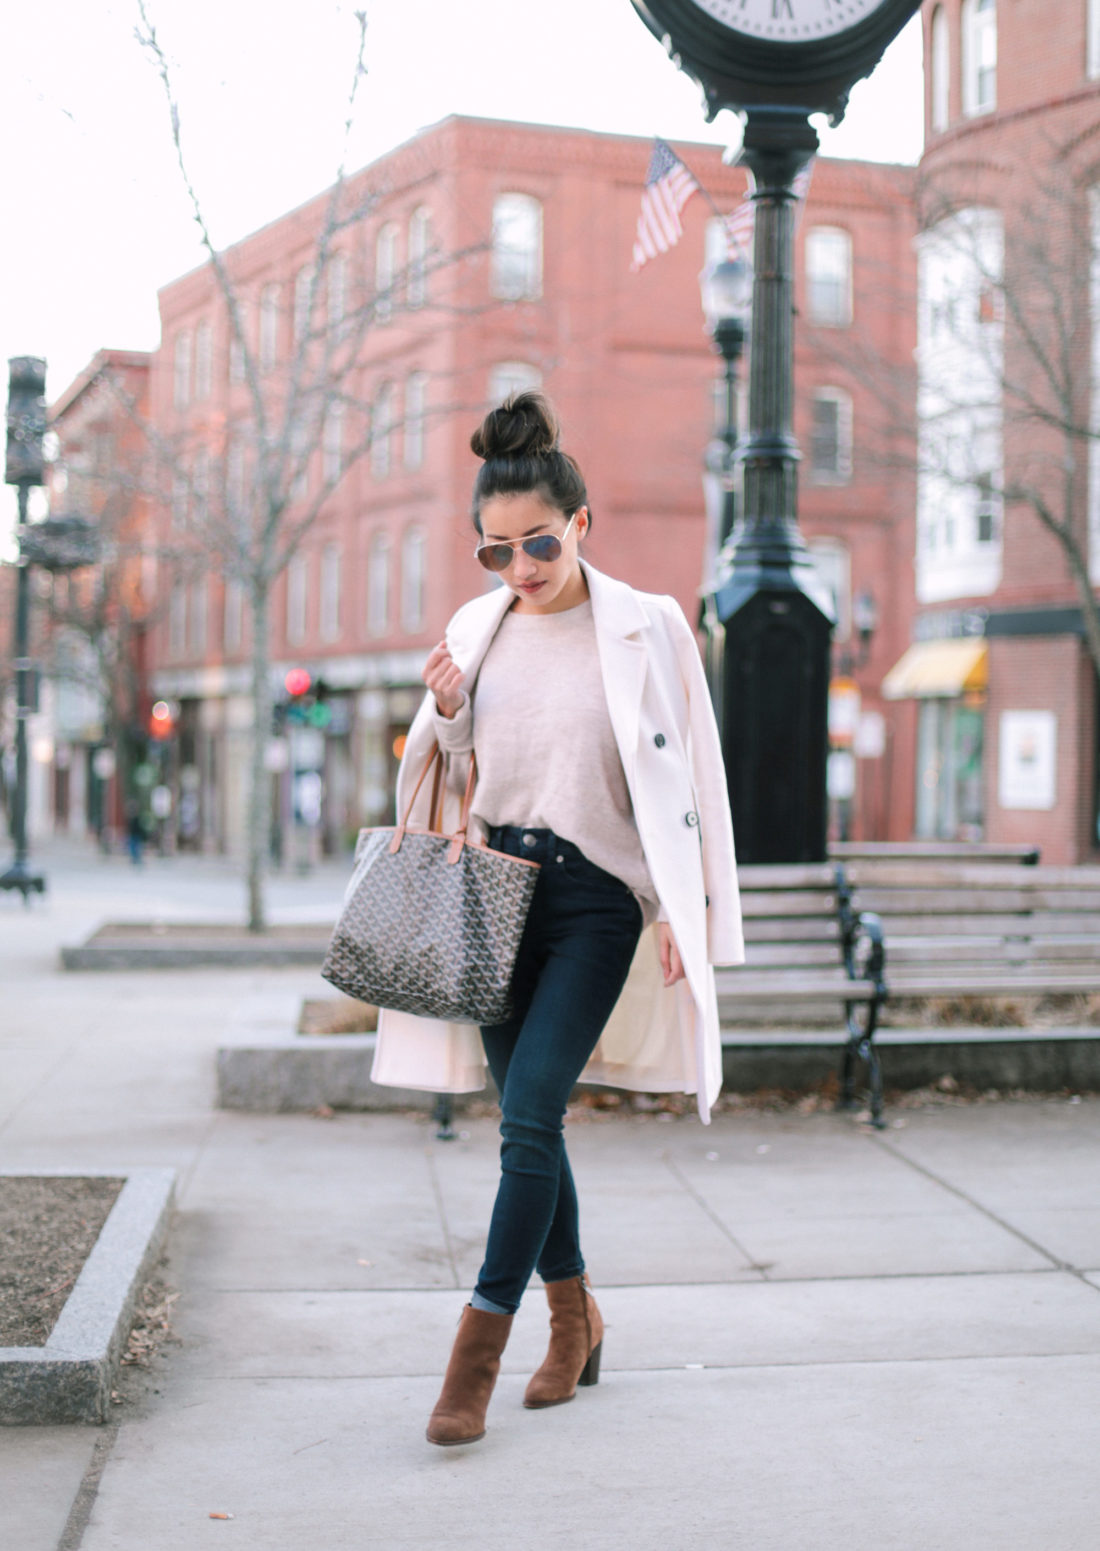 stylish casual winter outfit ideas brookline boston